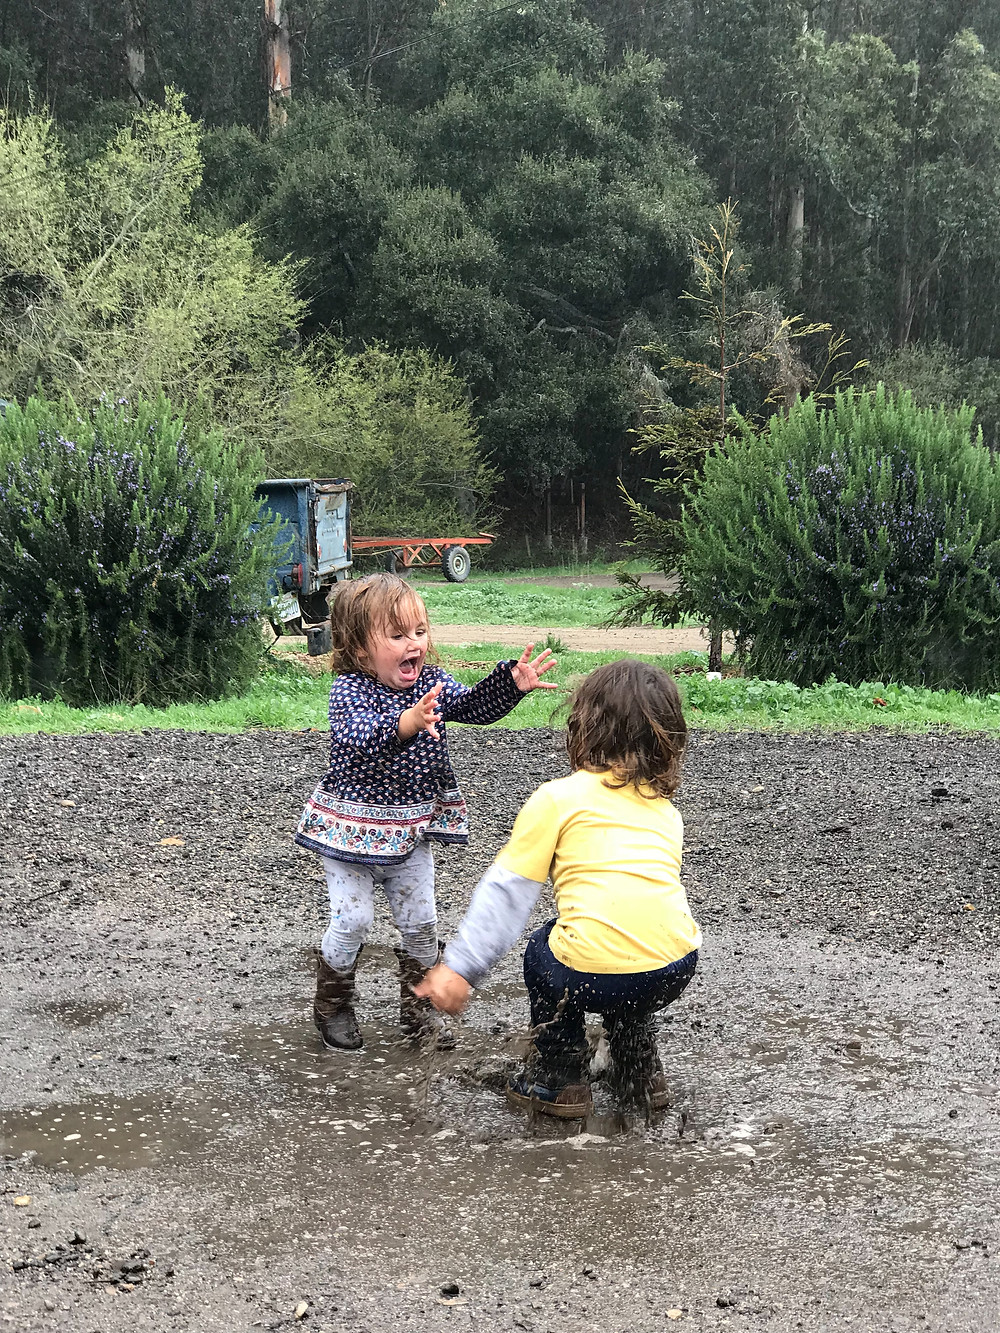 Wyatt & Zoe jumping in muddy puddles